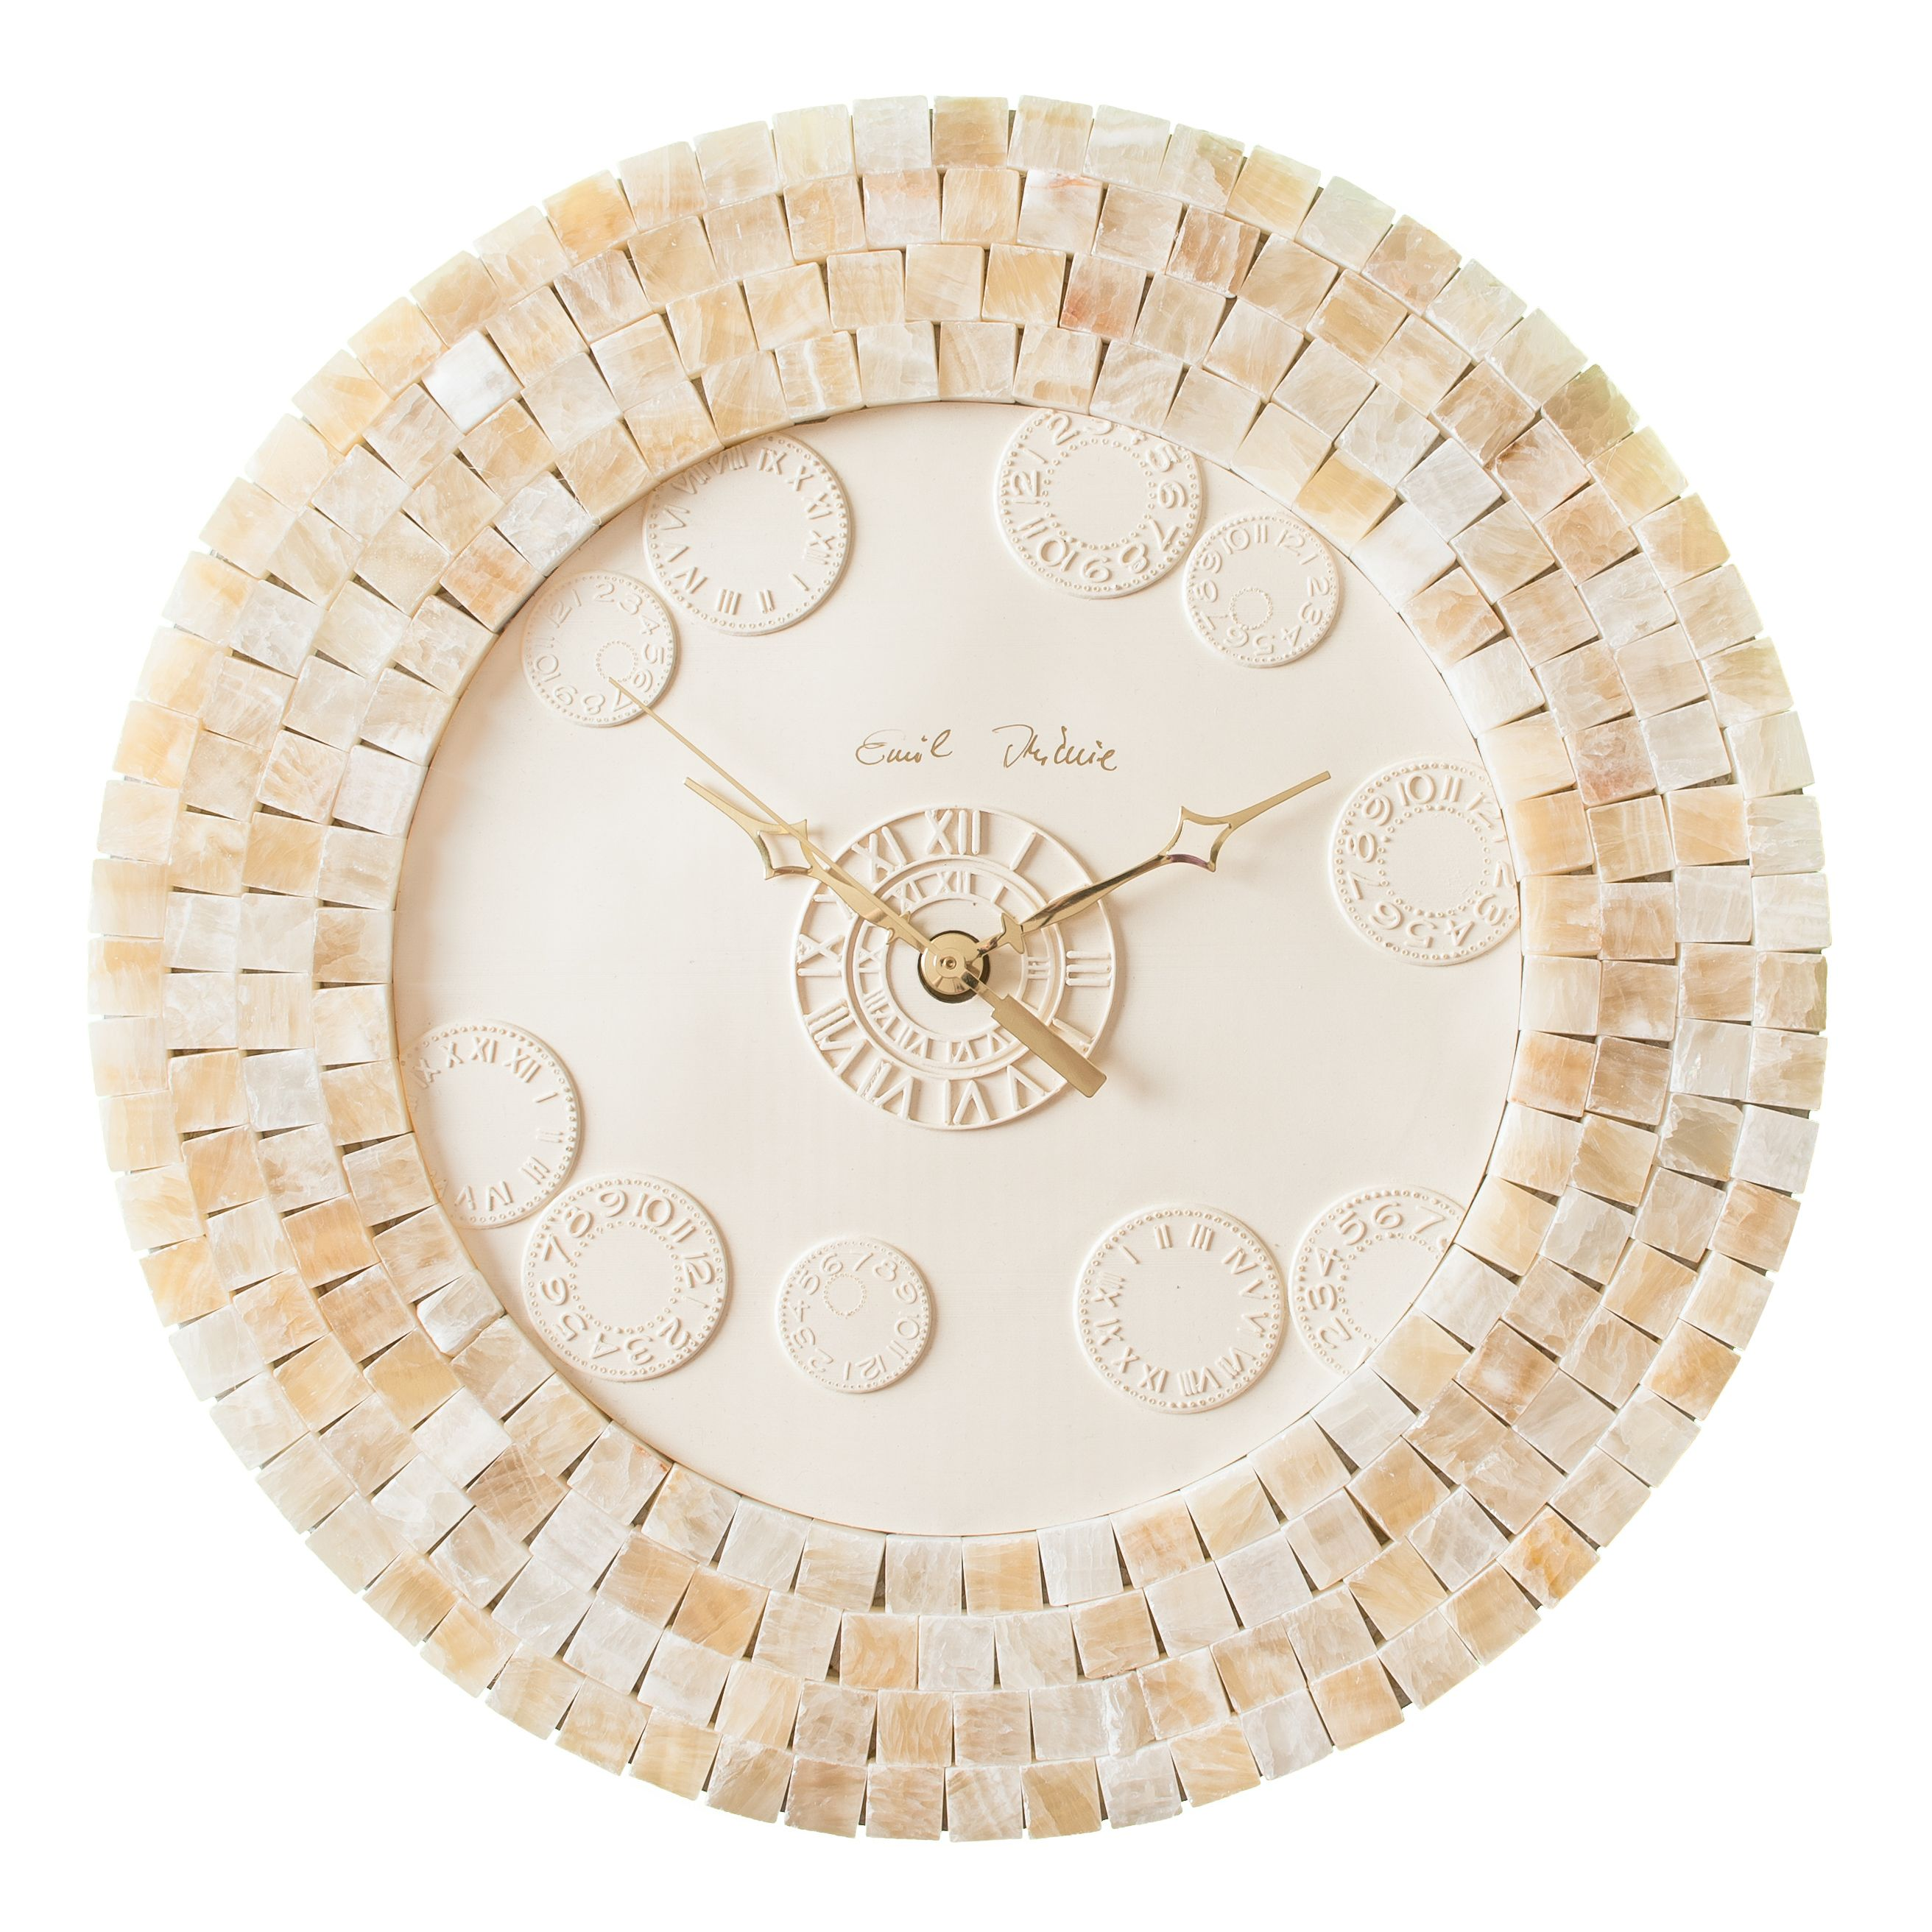 A Wall Clock To Love The Handmade One Of A Kind Giallo Crystal Onyx Mosaic Wall Clock Find All Unique Clocks Fro How To Make Wall Clock Wall Clock Onyx Tile